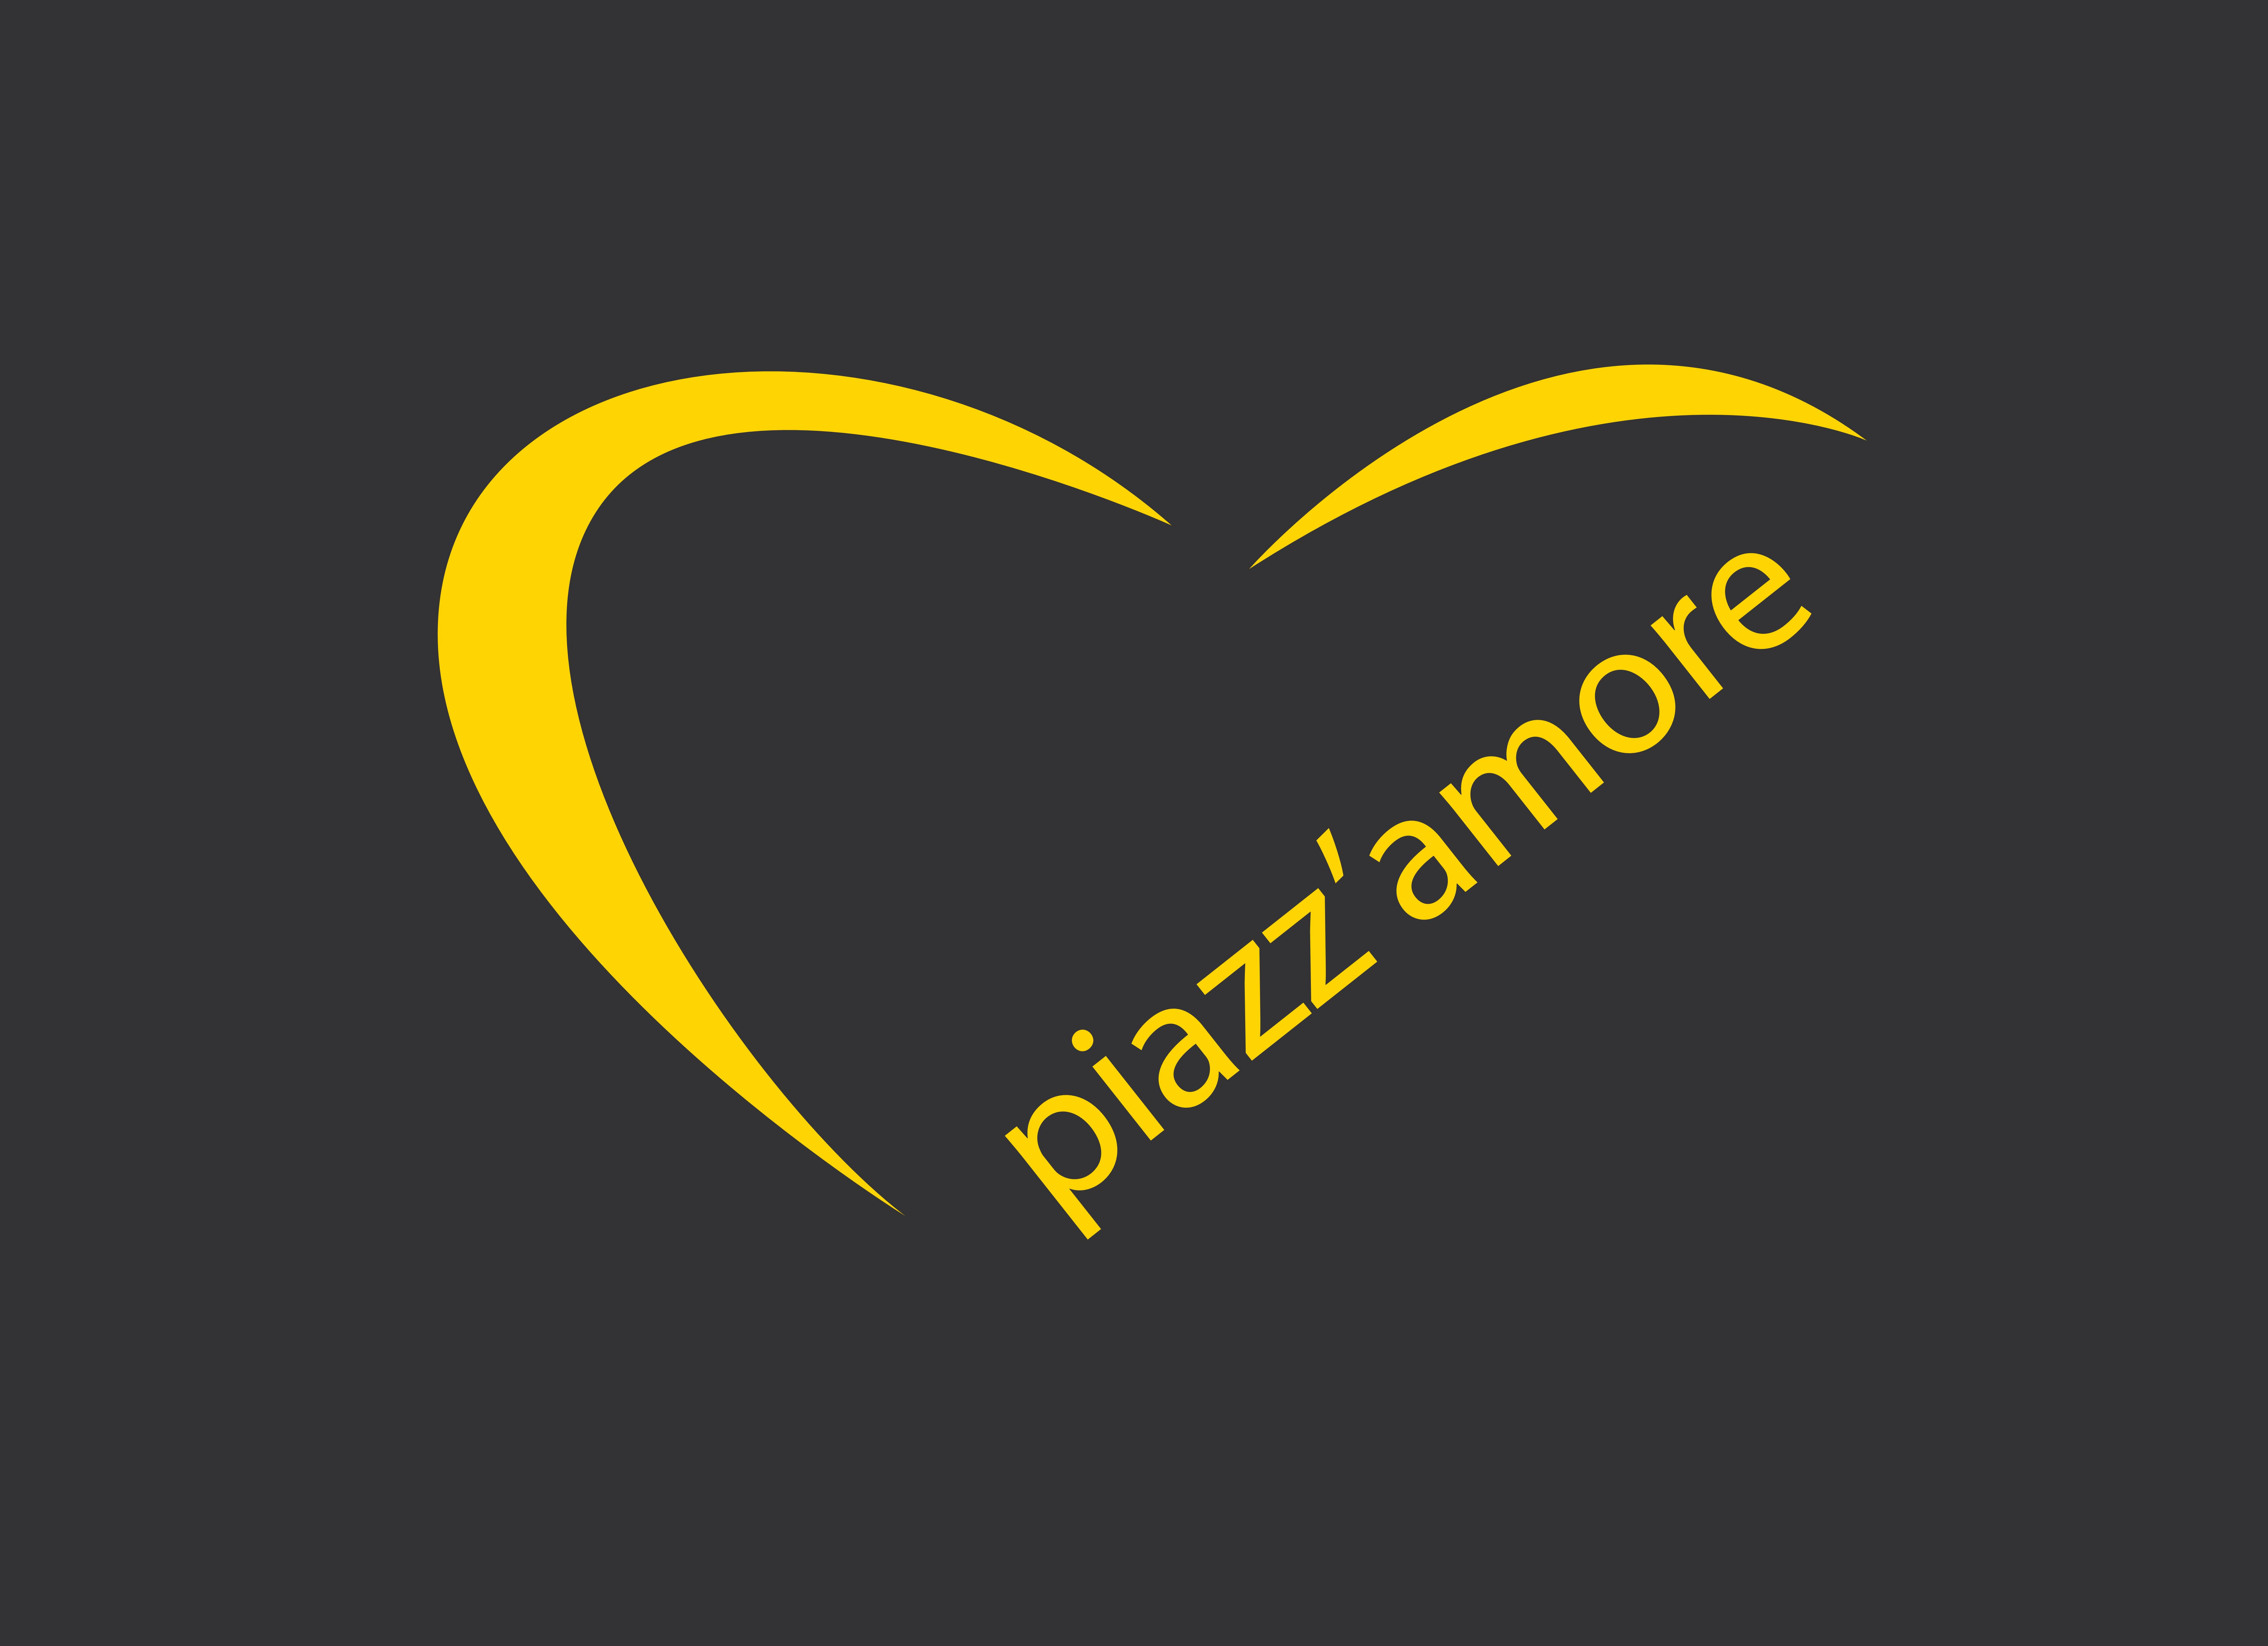 logo Piazza'more